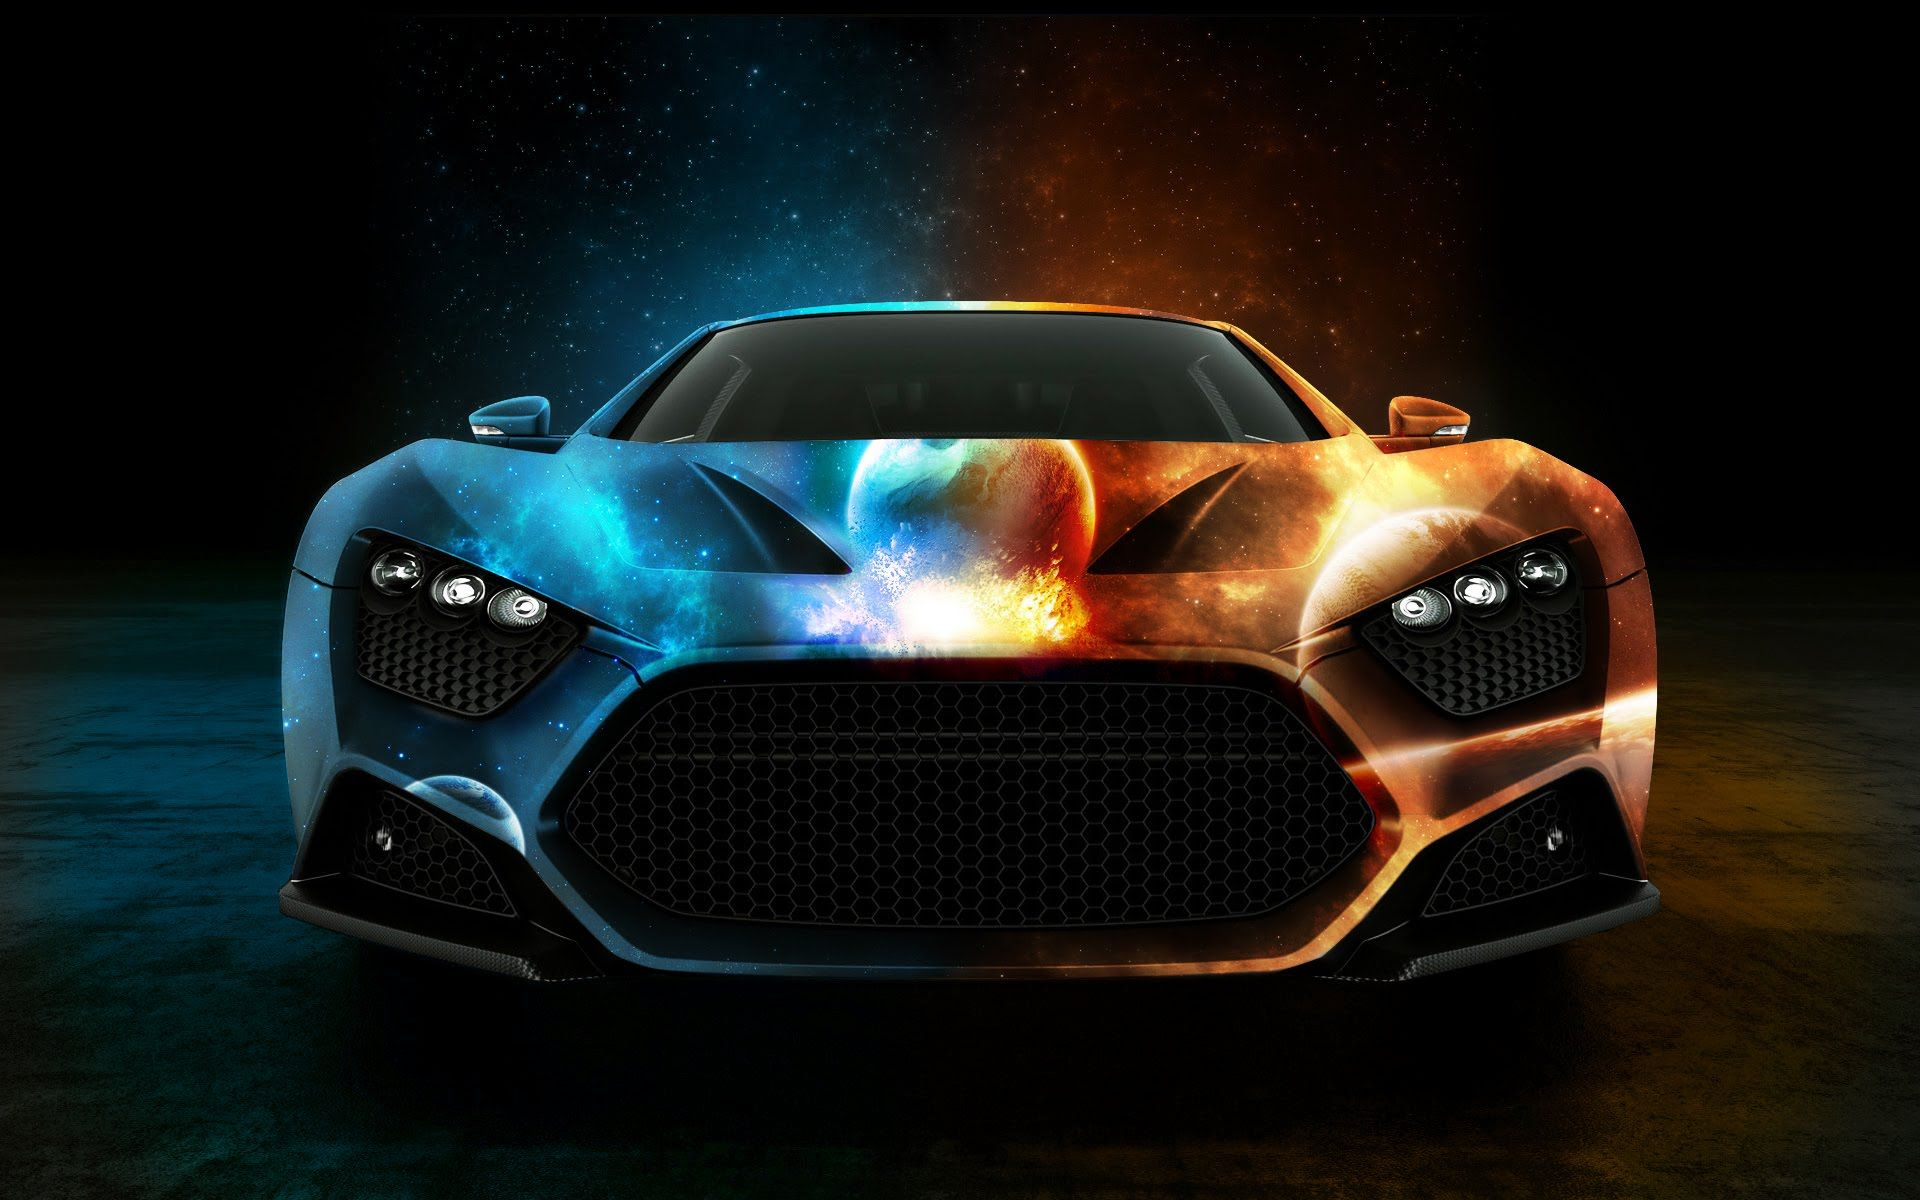 Top 10 Fastest Cars In The World Cool Car Pictures Car Backgrounds Sports Car Wallpaper